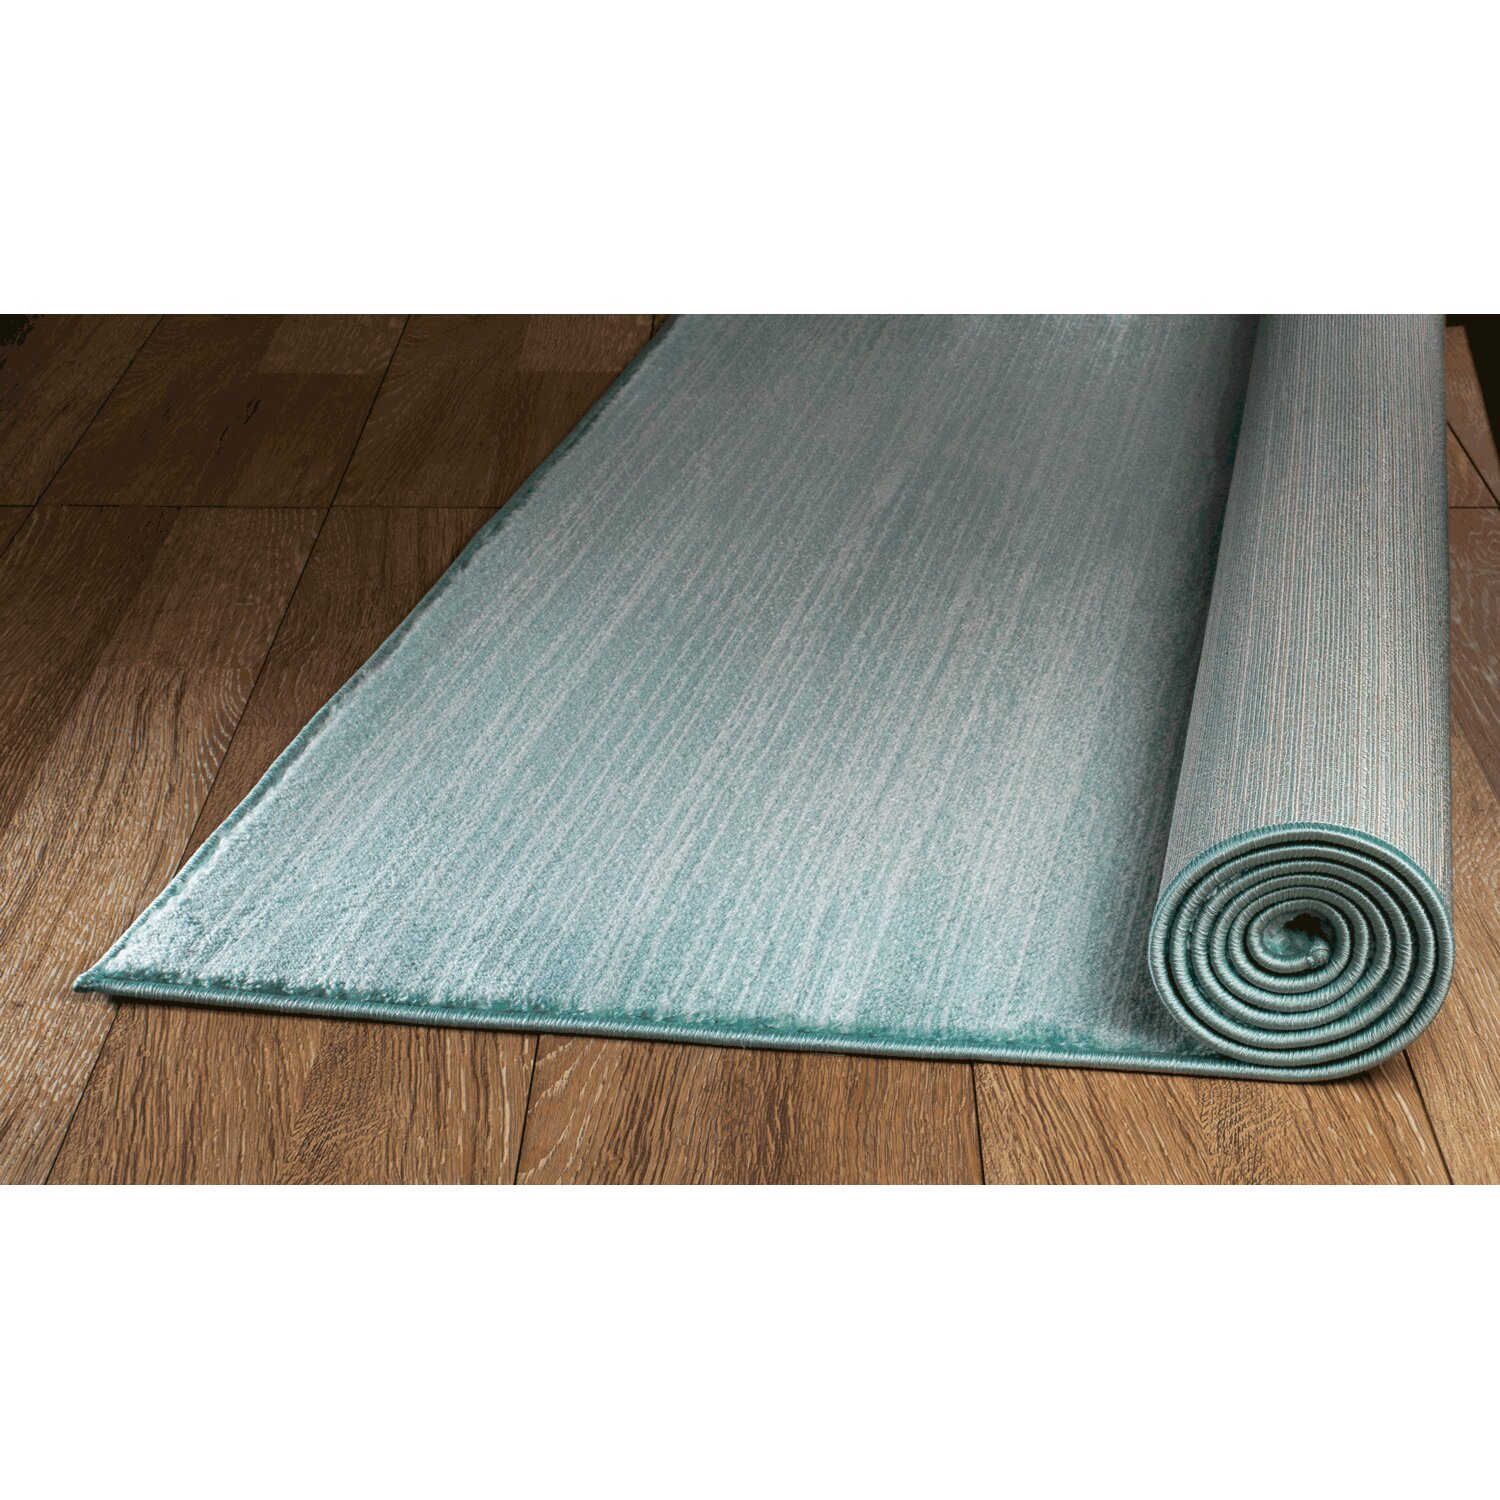 Rug And Decor Inc Summit Turquoise Area Rug Reviews: Rug And Decor Inc. Summit Elite Blue Area Rug & Reviews